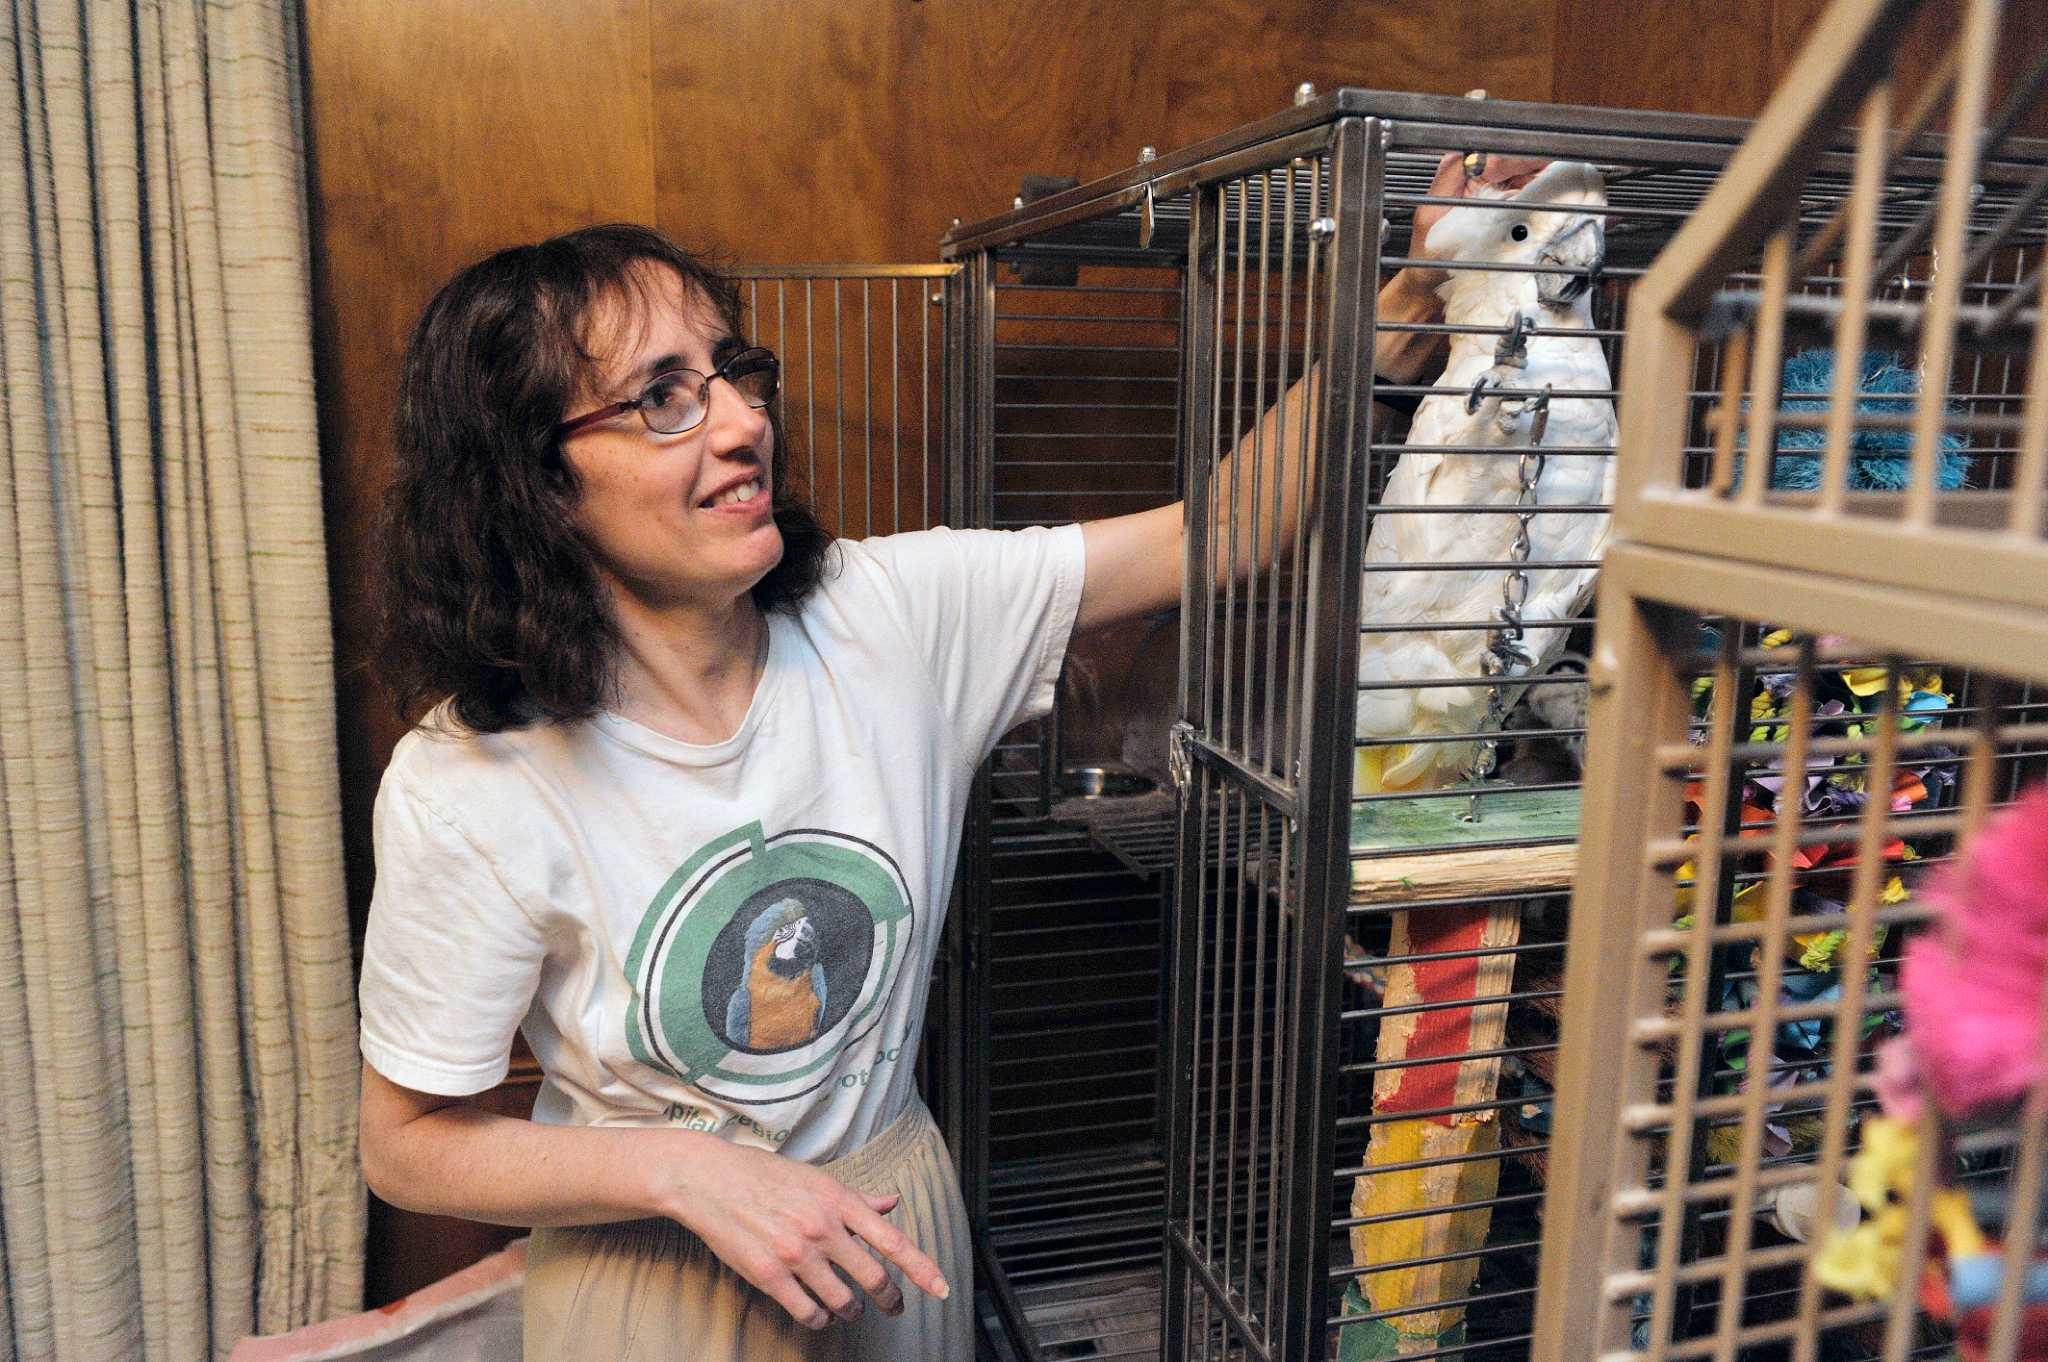 Capital Region Parrot Society on mission to rescue parrots